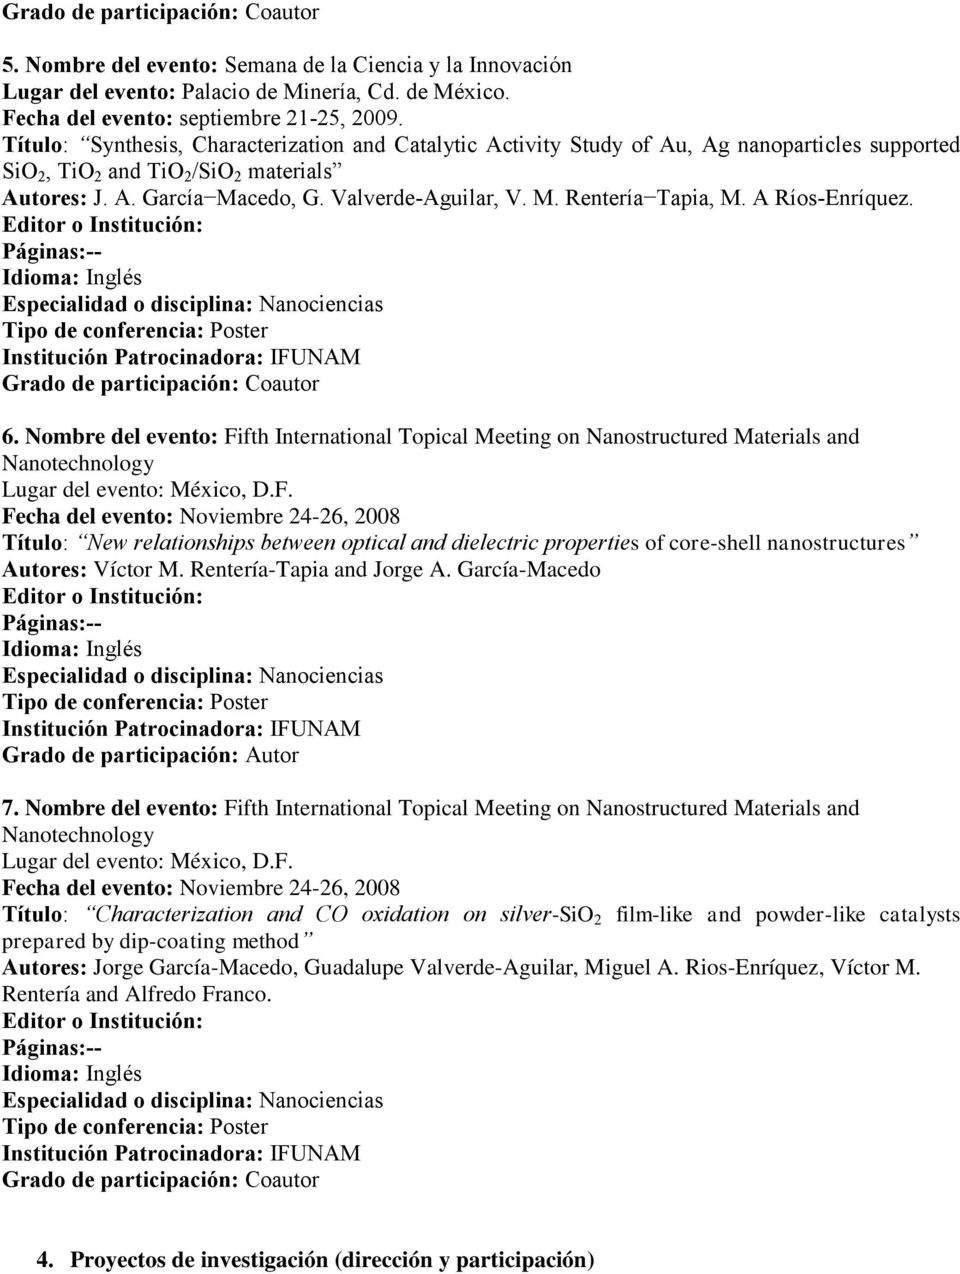 A Ríos-Enríquez. 6. Nombre del evento: Fifth International Topical Meeting on Nanostructured Materials and Nanotechnology Lugar del evento: México, D.F. Fecha del evento: Noviembre 24-26, 2008 Título: New relationships between optical and dielectric properties of core-shell nanostructures Autores: Víctor M.